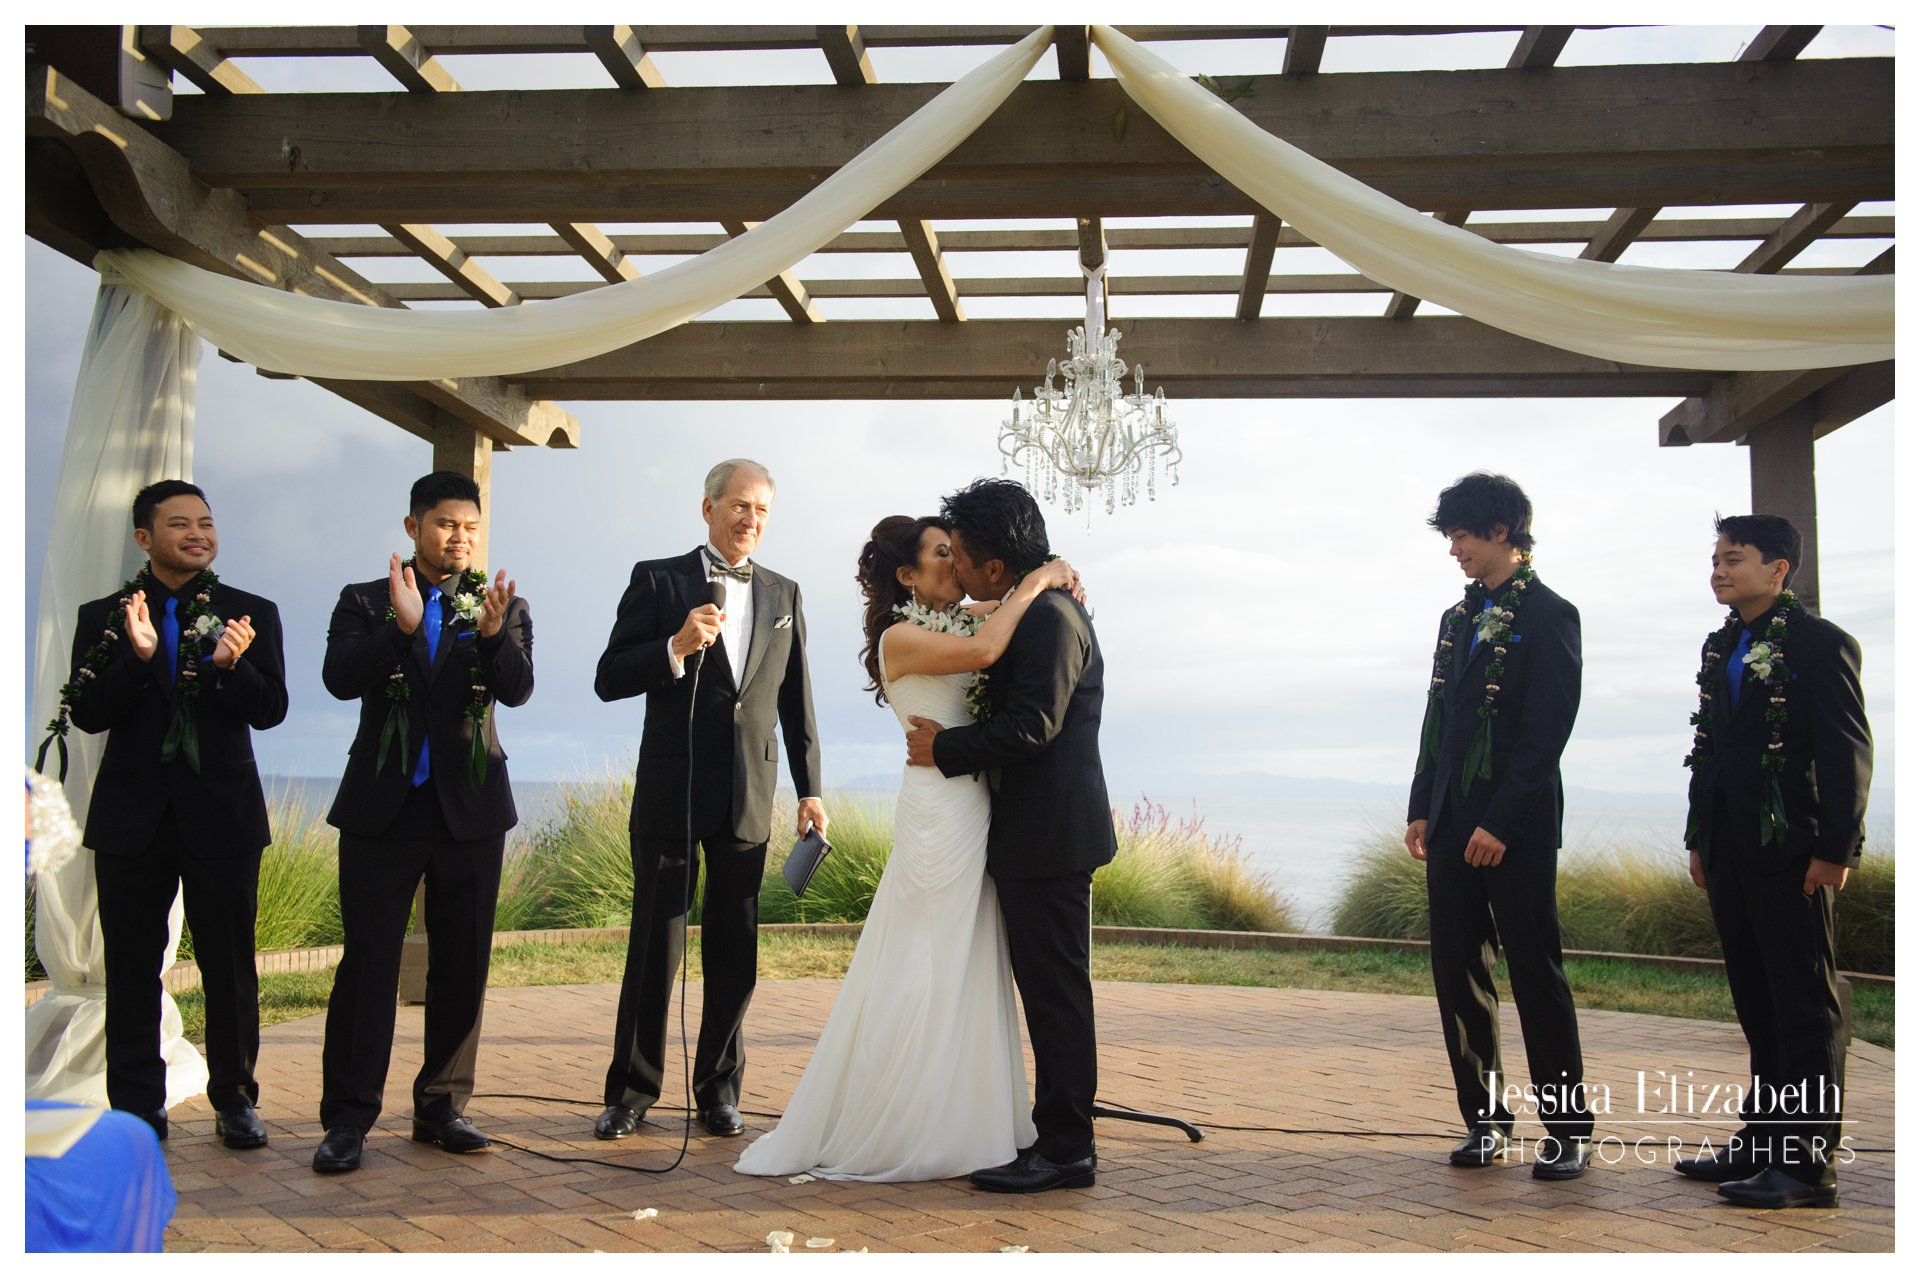 25-Terranea Palos Verdes Wedding Photography by Jessica Elizabeth-w